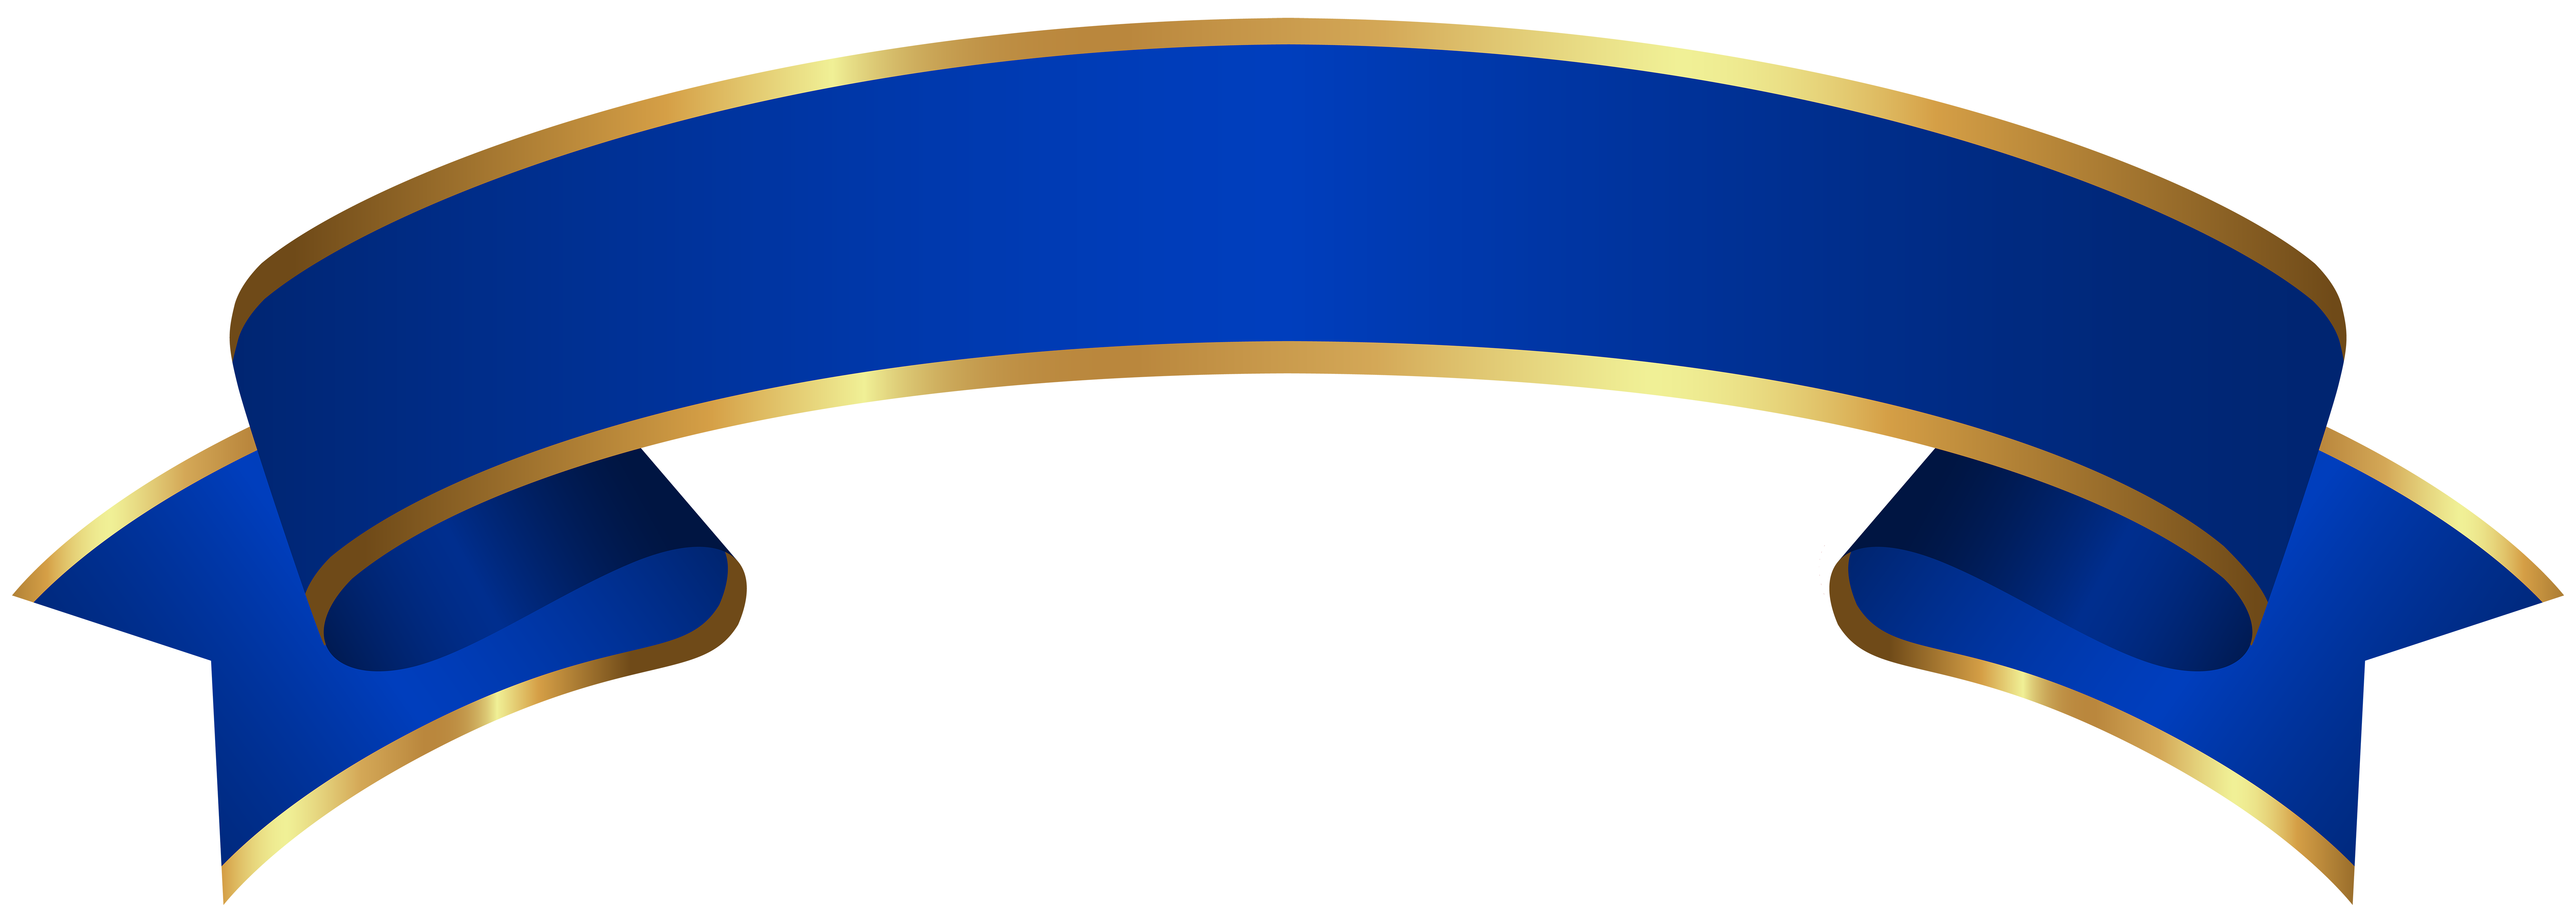 Blue Gold Banner Transparent Clip Art.